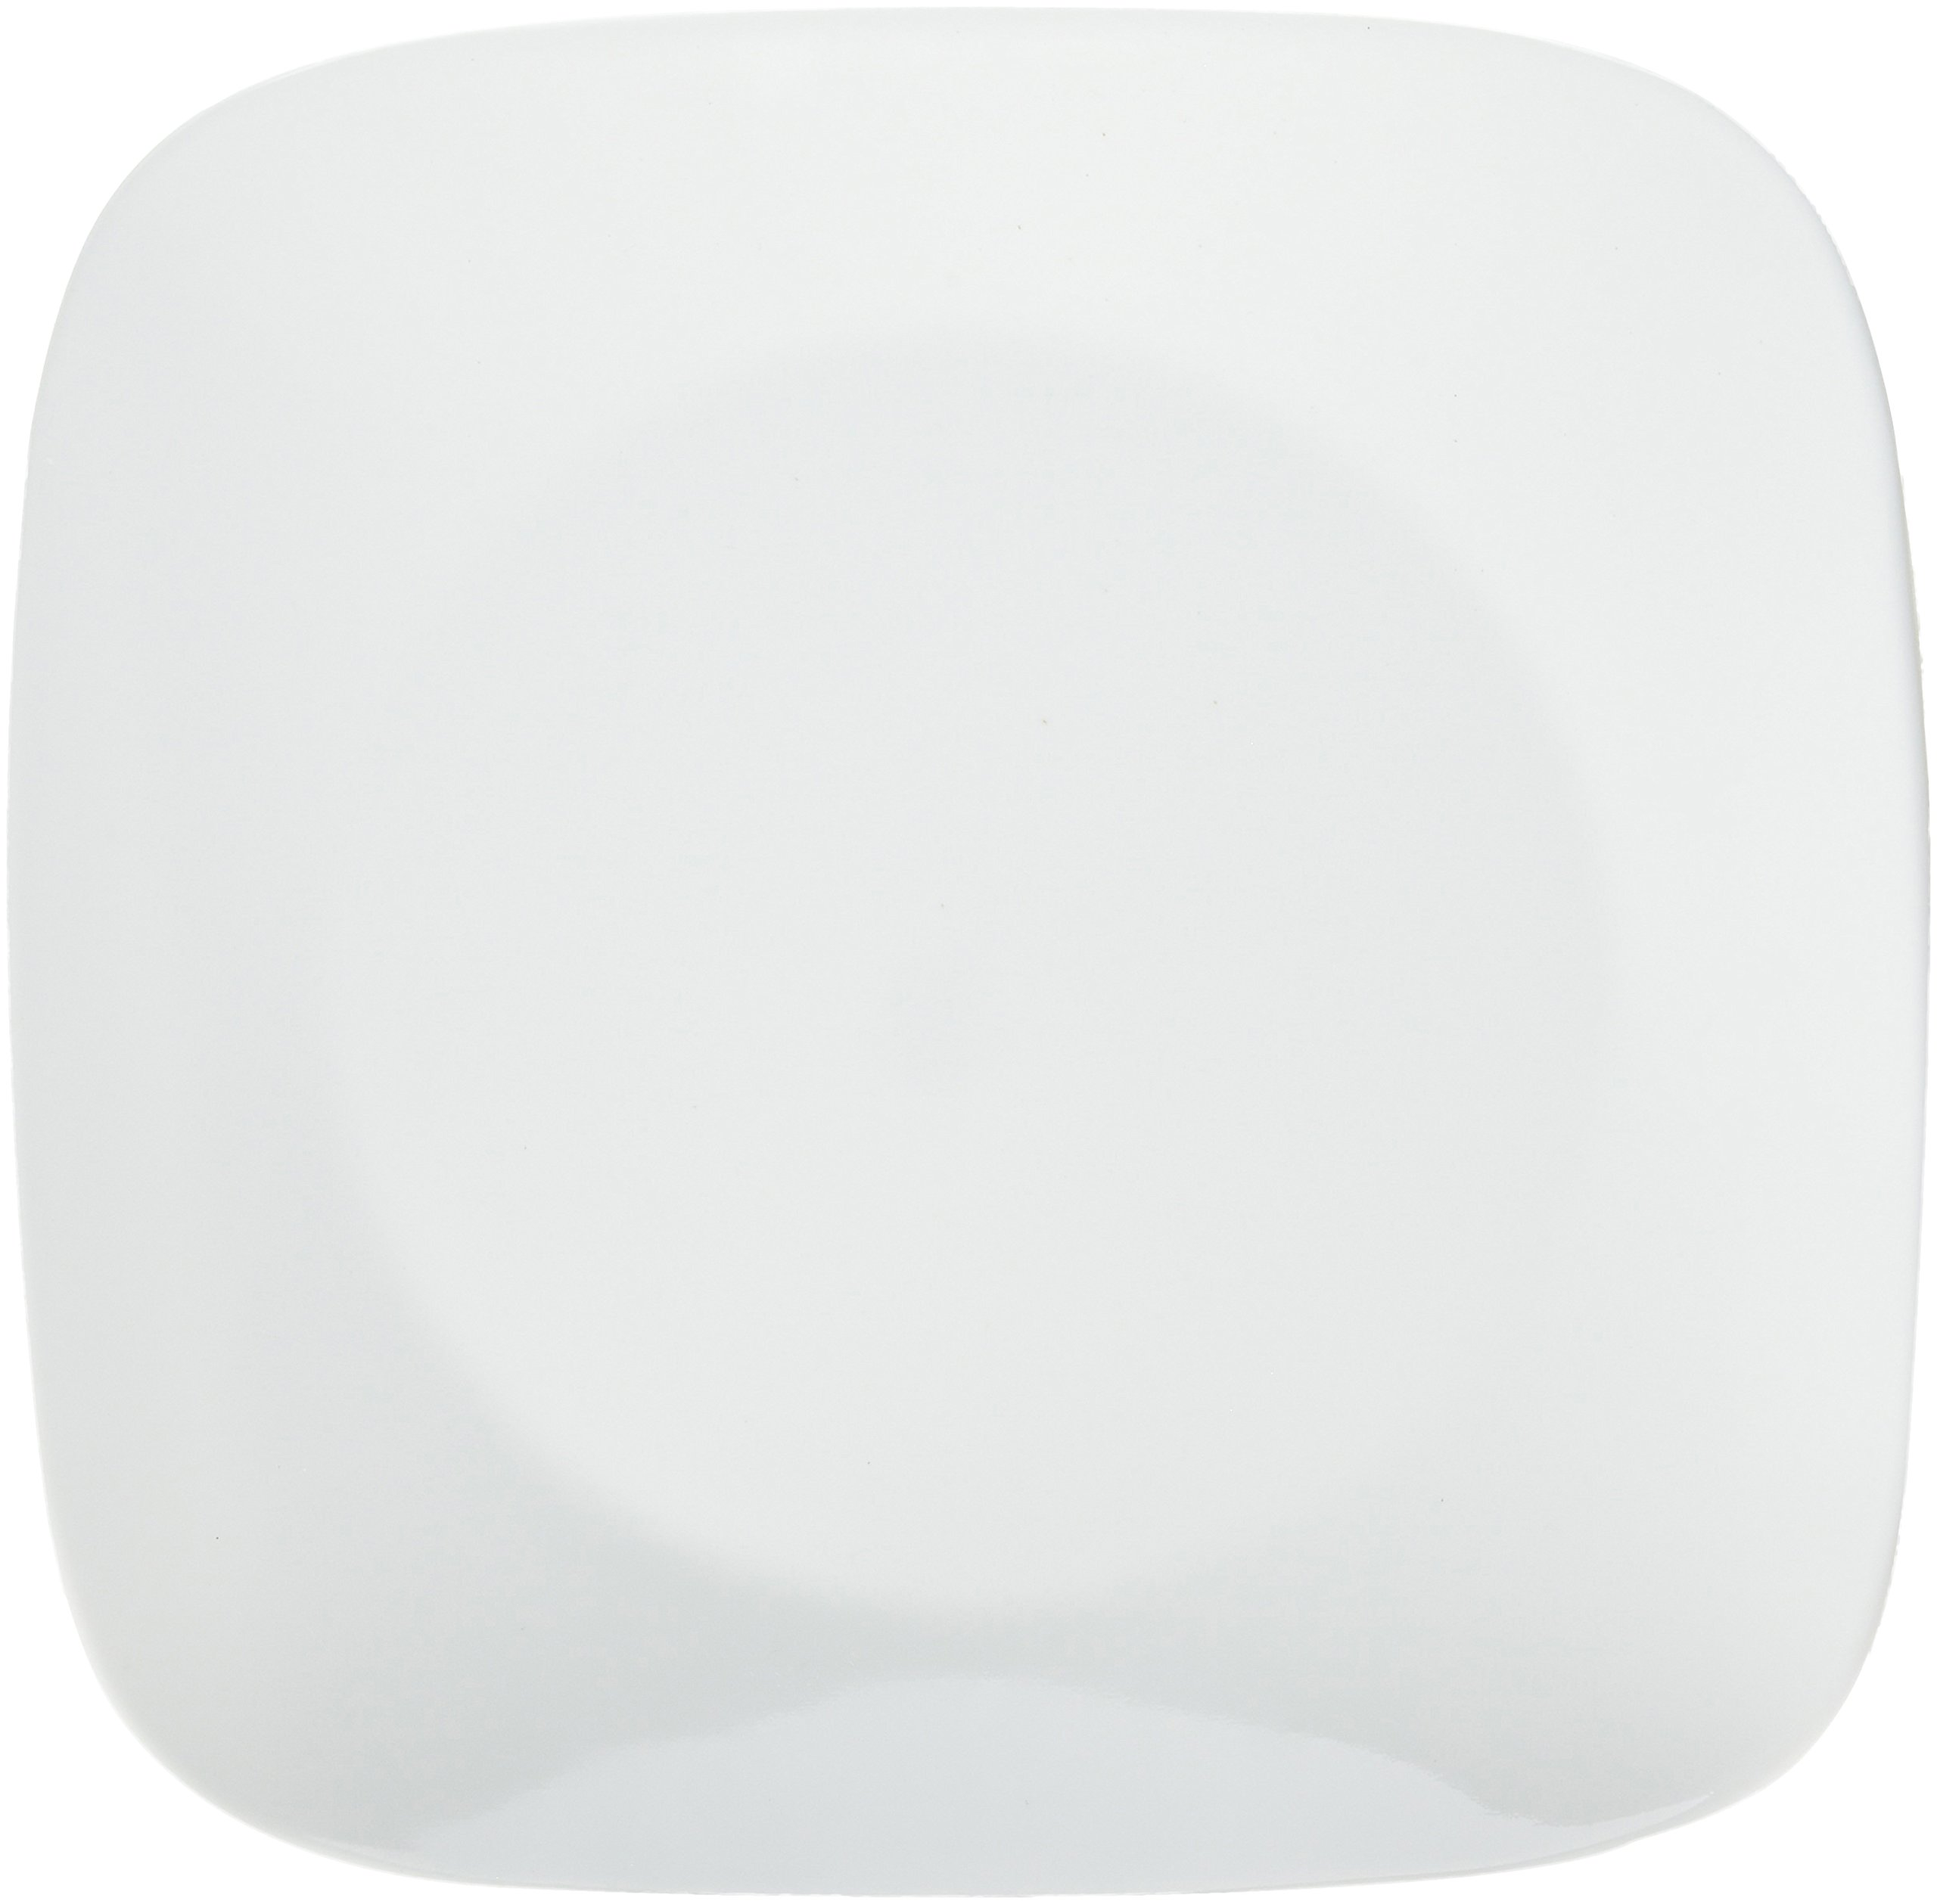 Corelle Corelle Square 10-1/4'' Dinner Plate (Set of 6), Pure White,